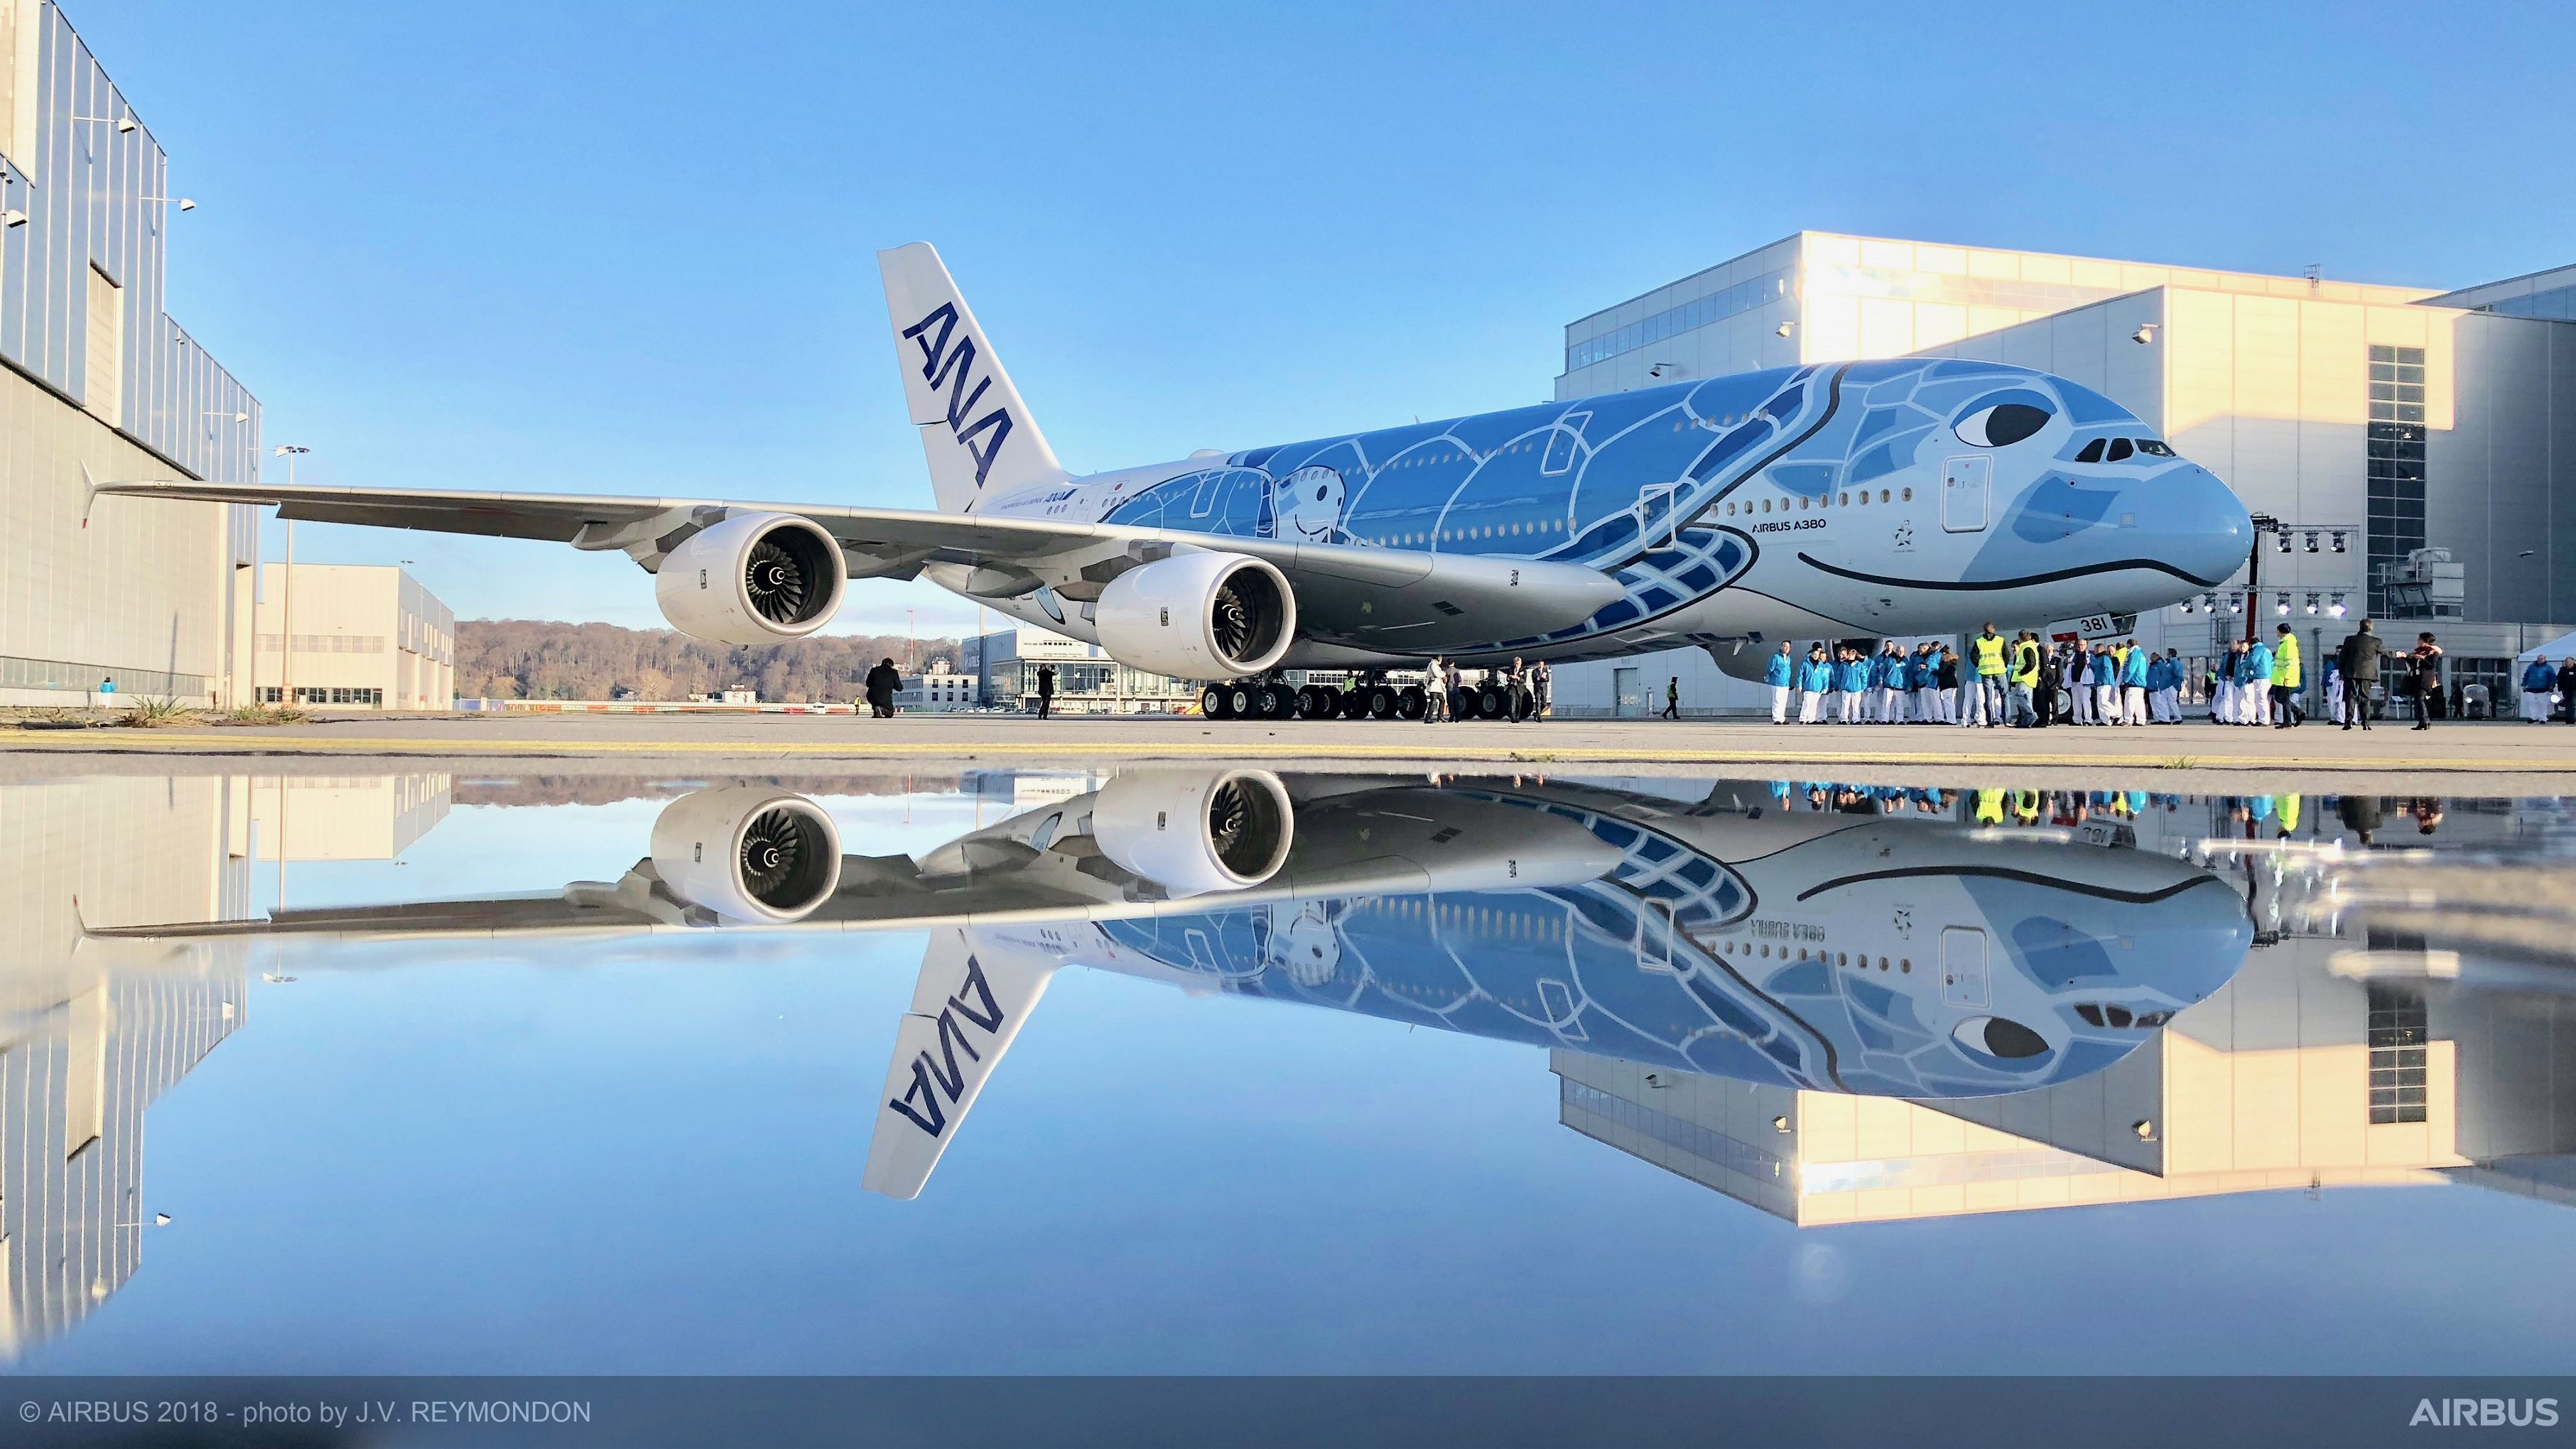 ANA's first A380 enters a final phase of ground and flight